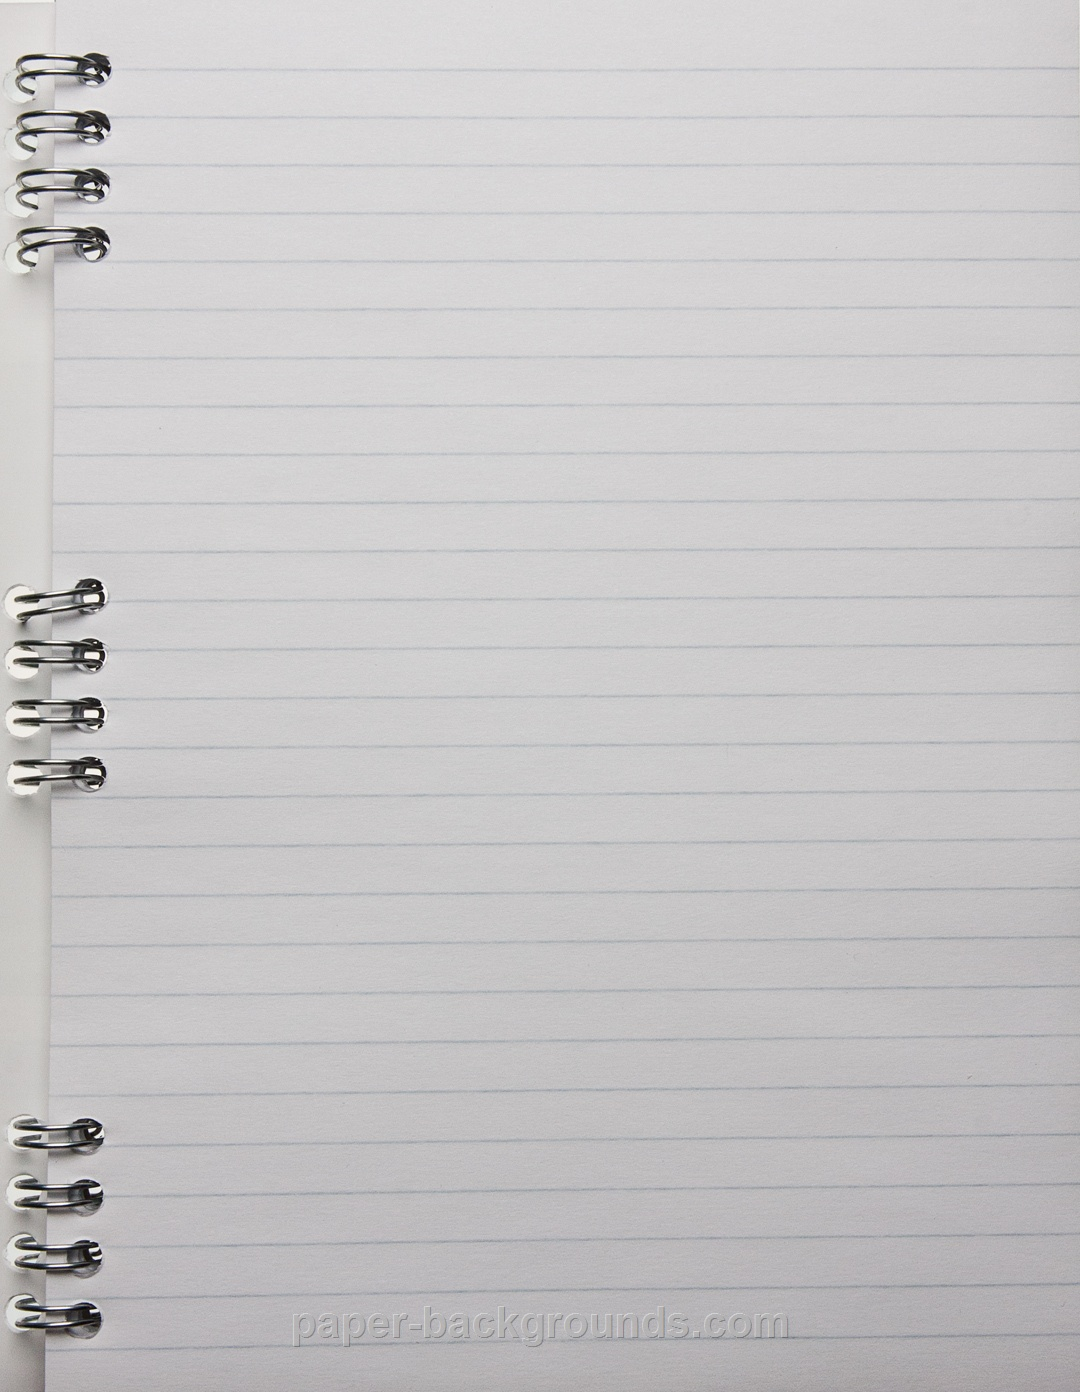 Paper Backgrounds White Notebook Page With Lines